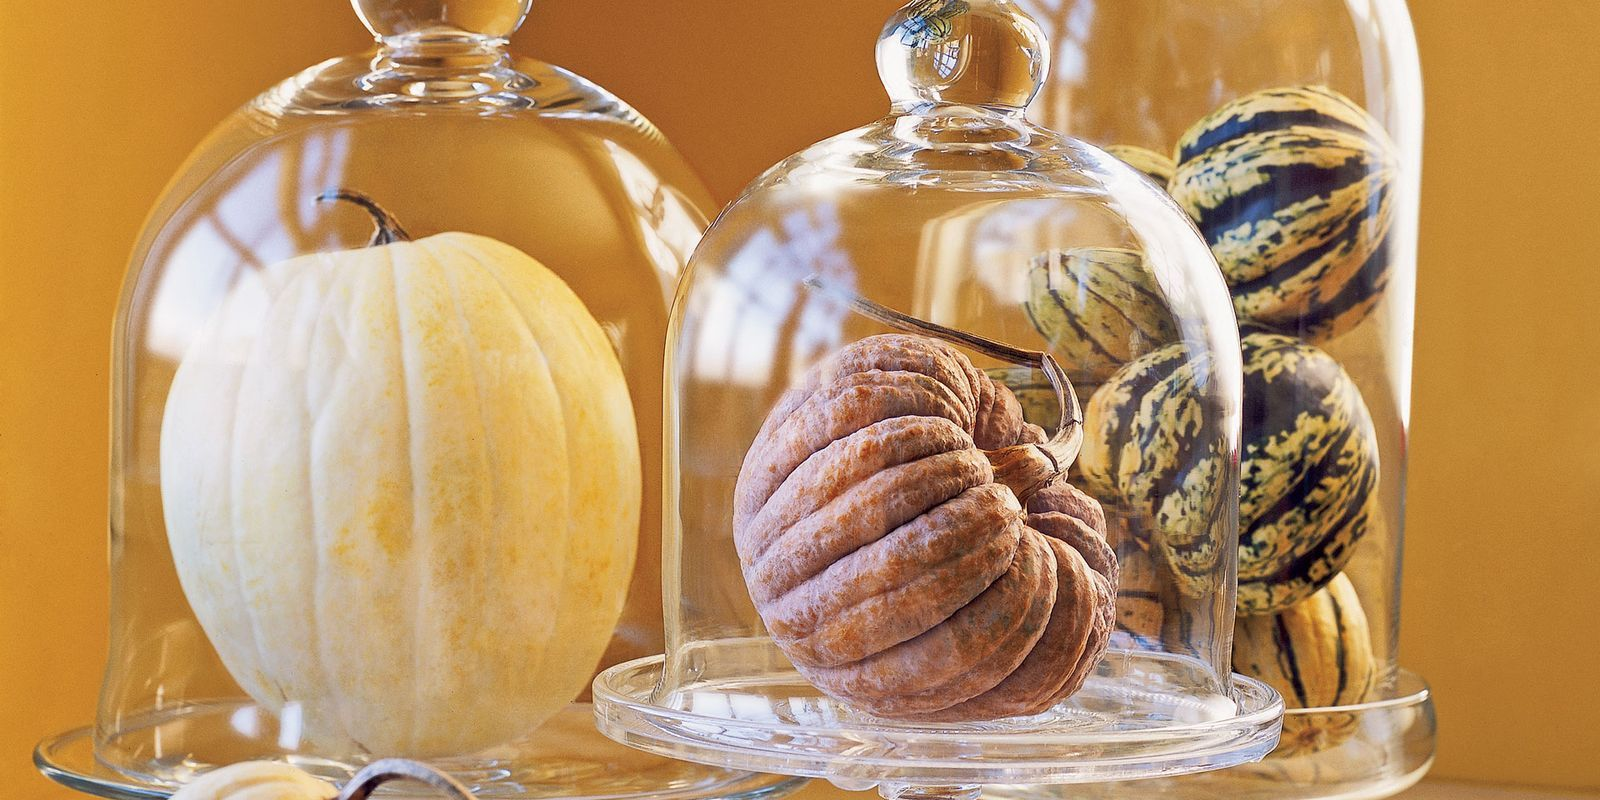 Merveilleux Seasonal Decorating. Decorate Your Home With Autumn Inspiration